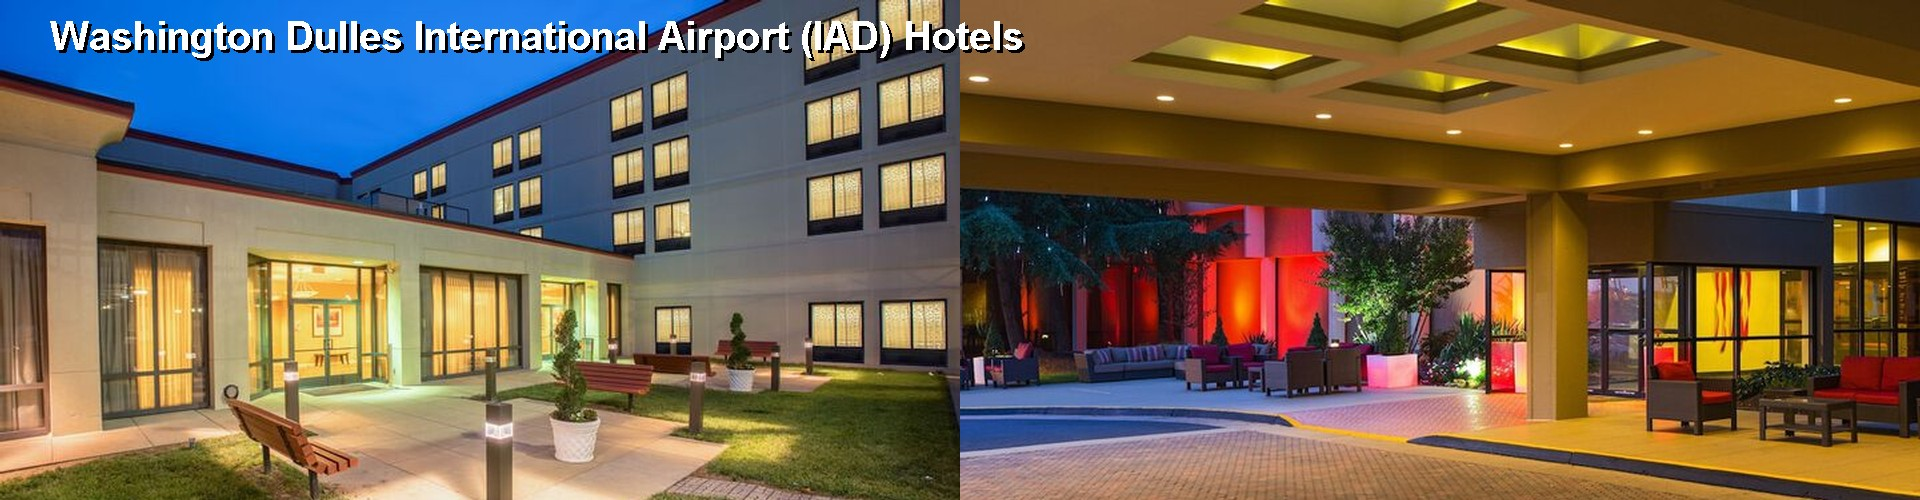 5 Best Hotels Near Washington Dulles International Airport Iad